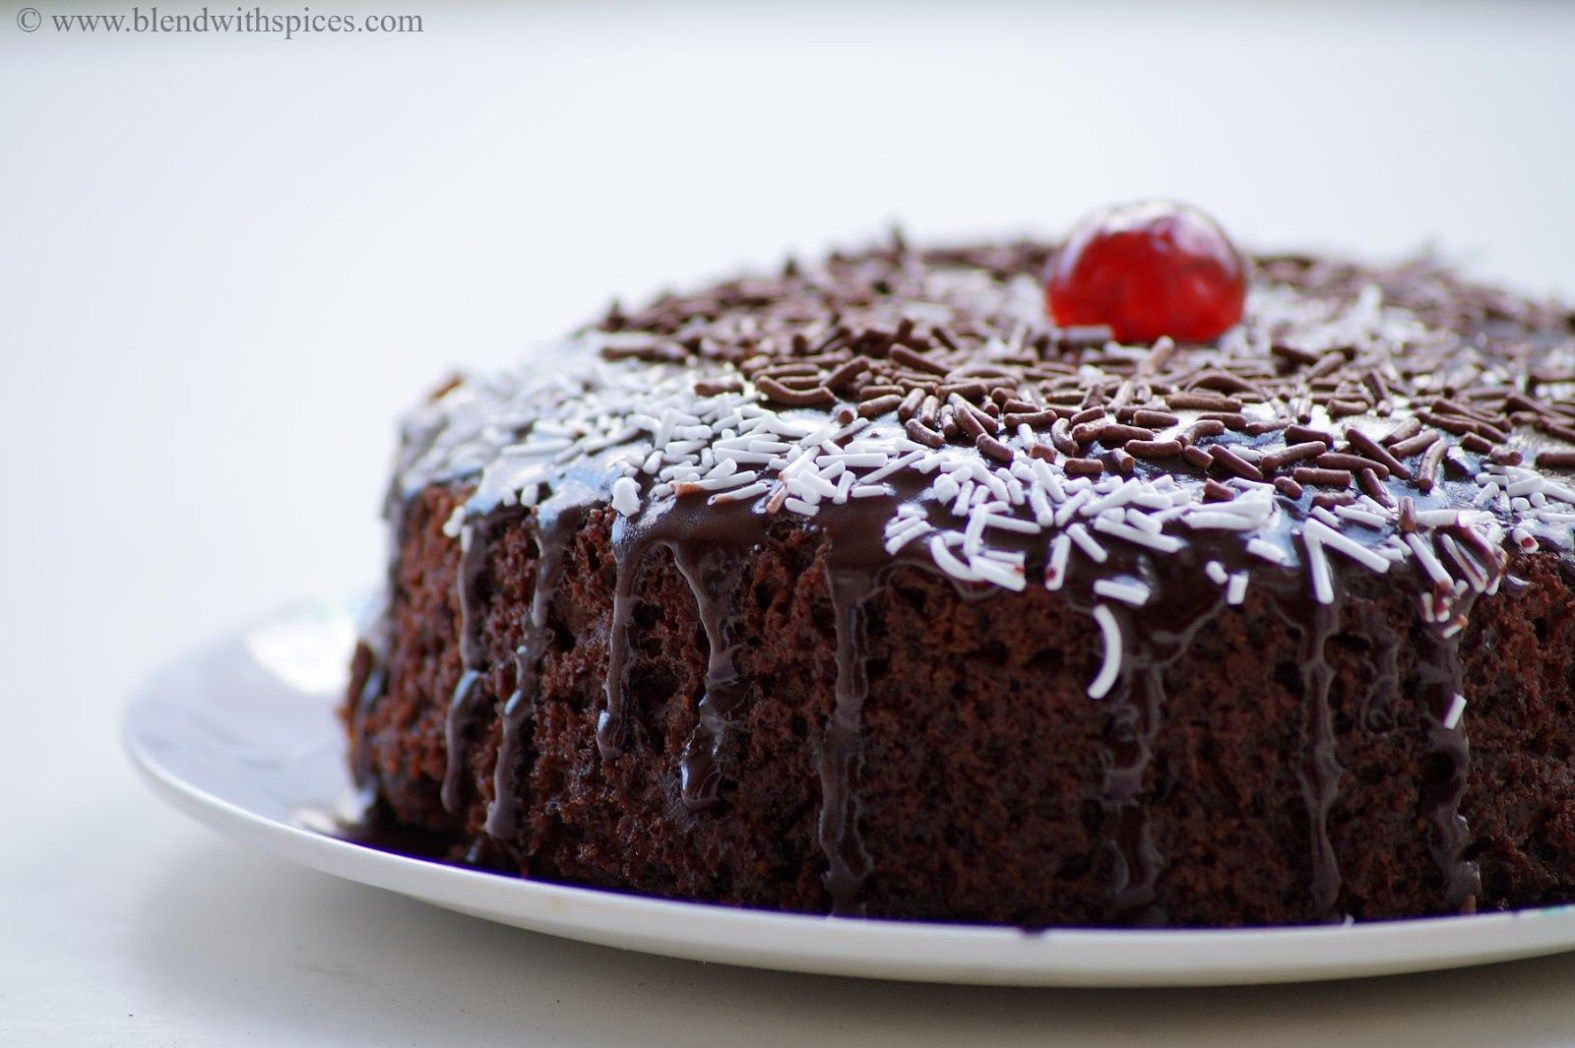 Eggless Chocolate Cake Recipe Without Oven In 2020 Cake Recipes Chocolate Cake In Cooker Cake Recipes Without Oven